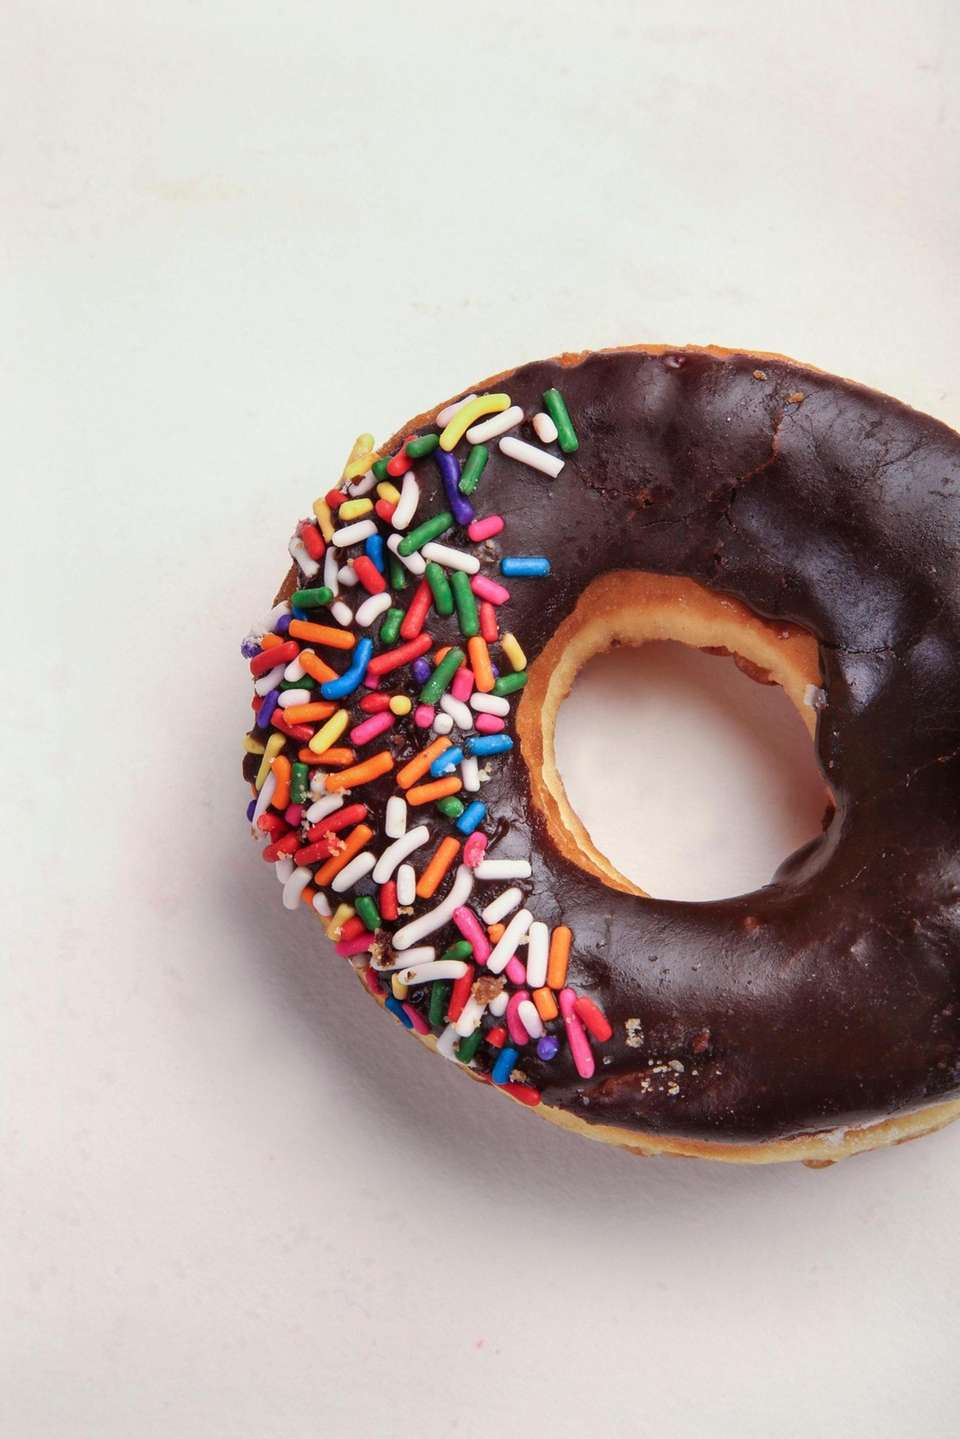 A chocolate covered doughnut with sprinkles from House